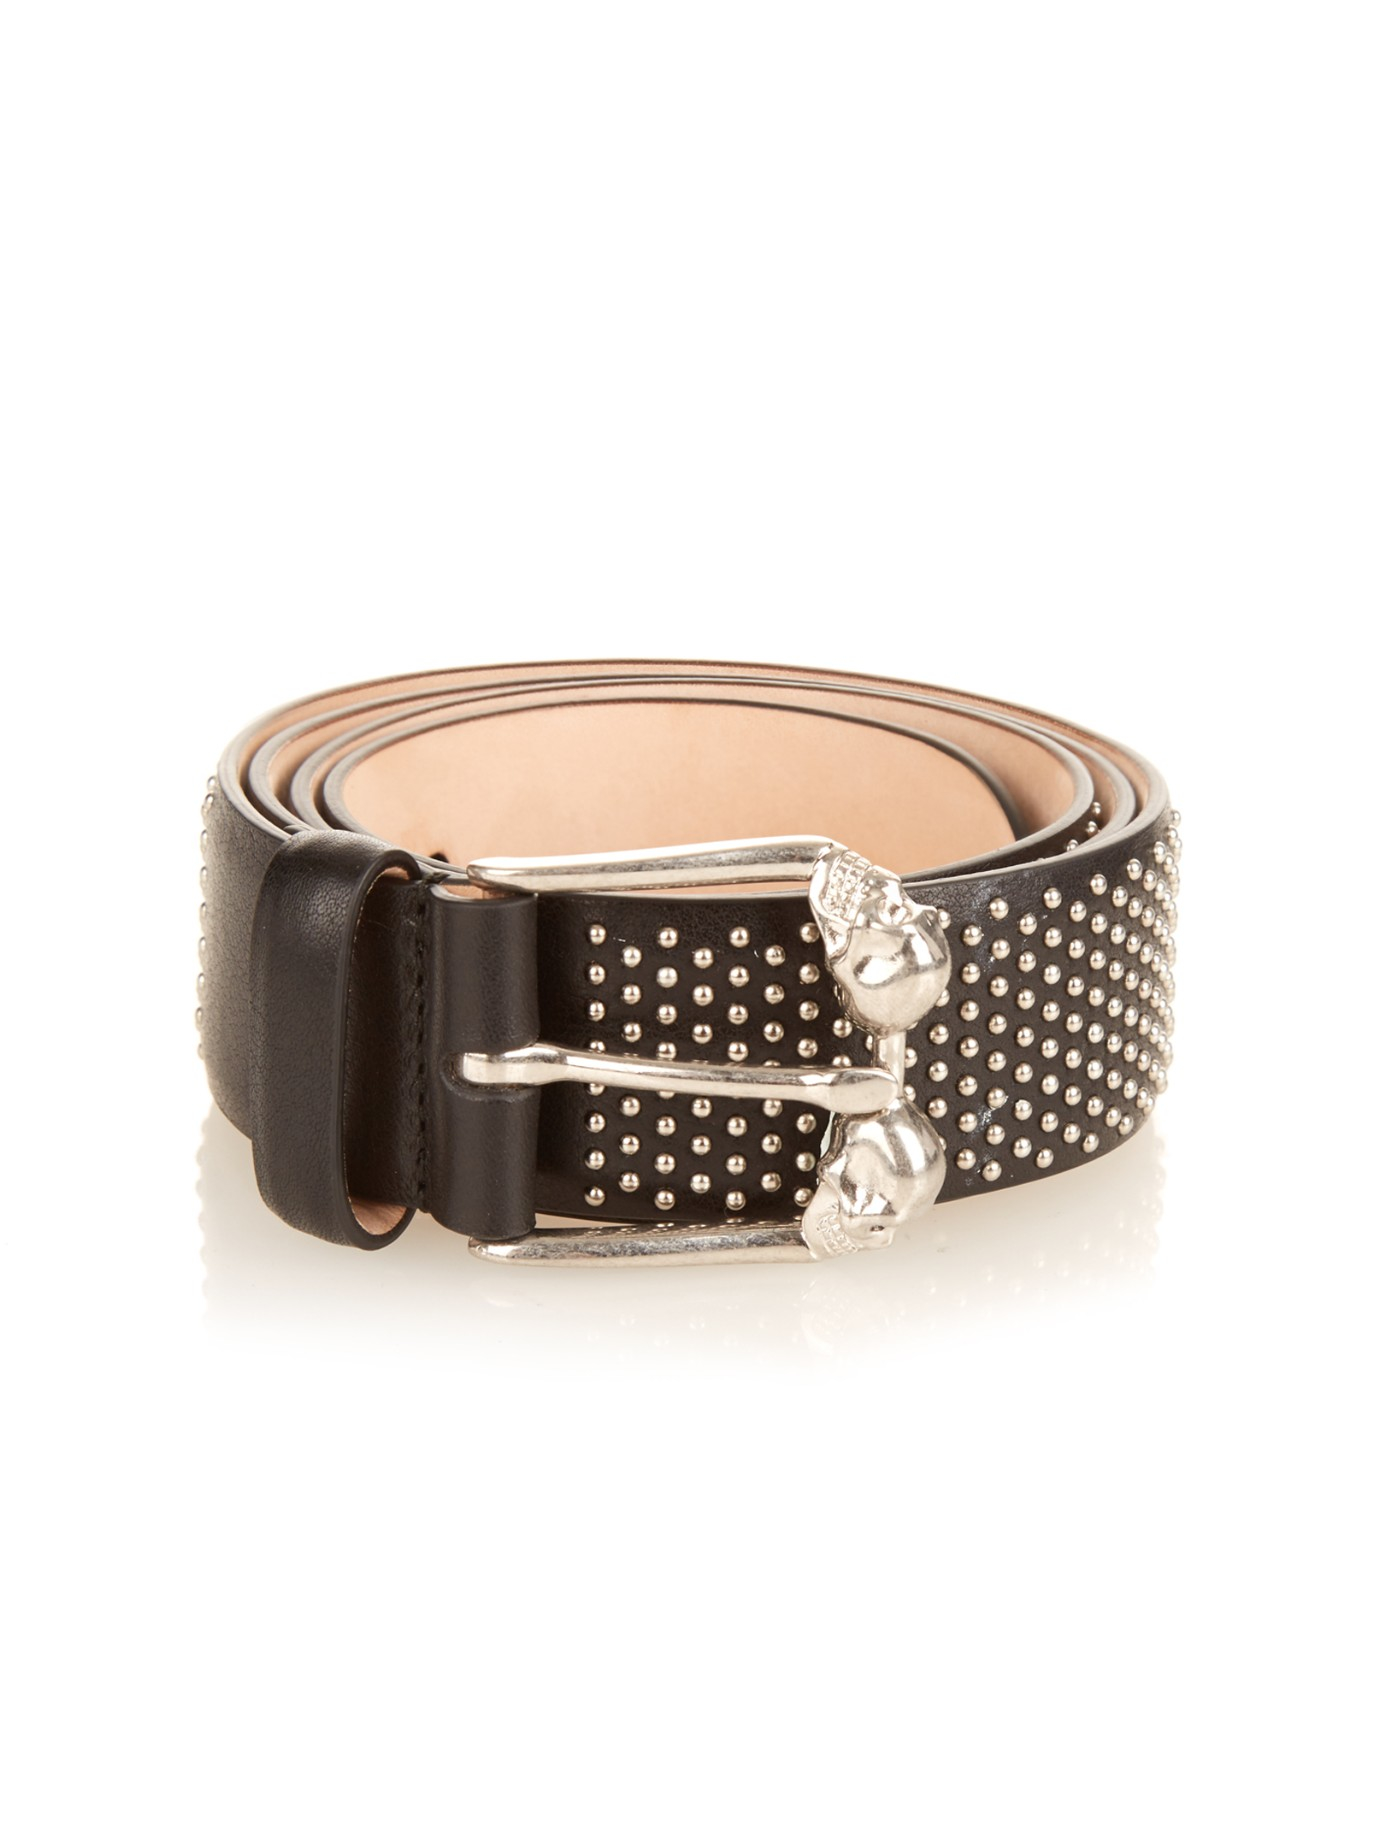 gold studded leather belt - Black Alexander McQueen R6BsQ